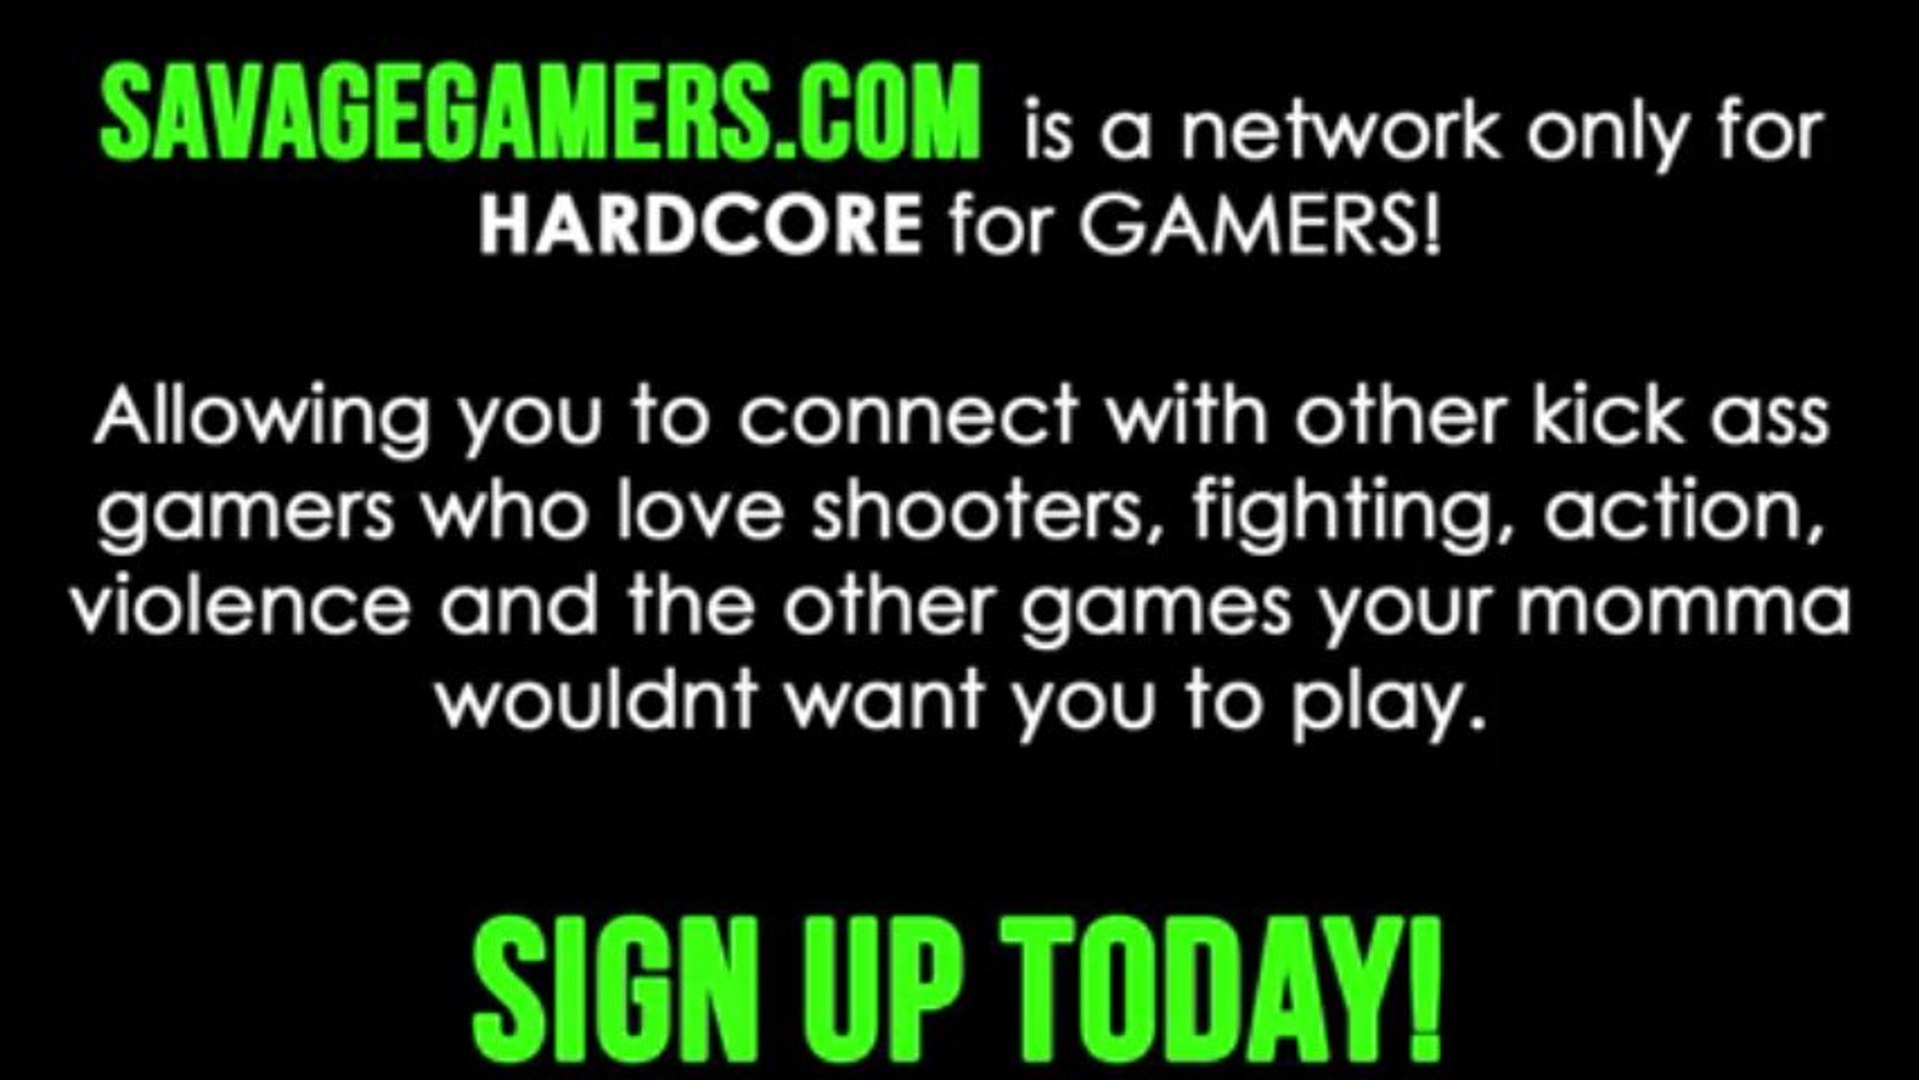 Savage Gamers - A Social New Network for Hardcore Gamers